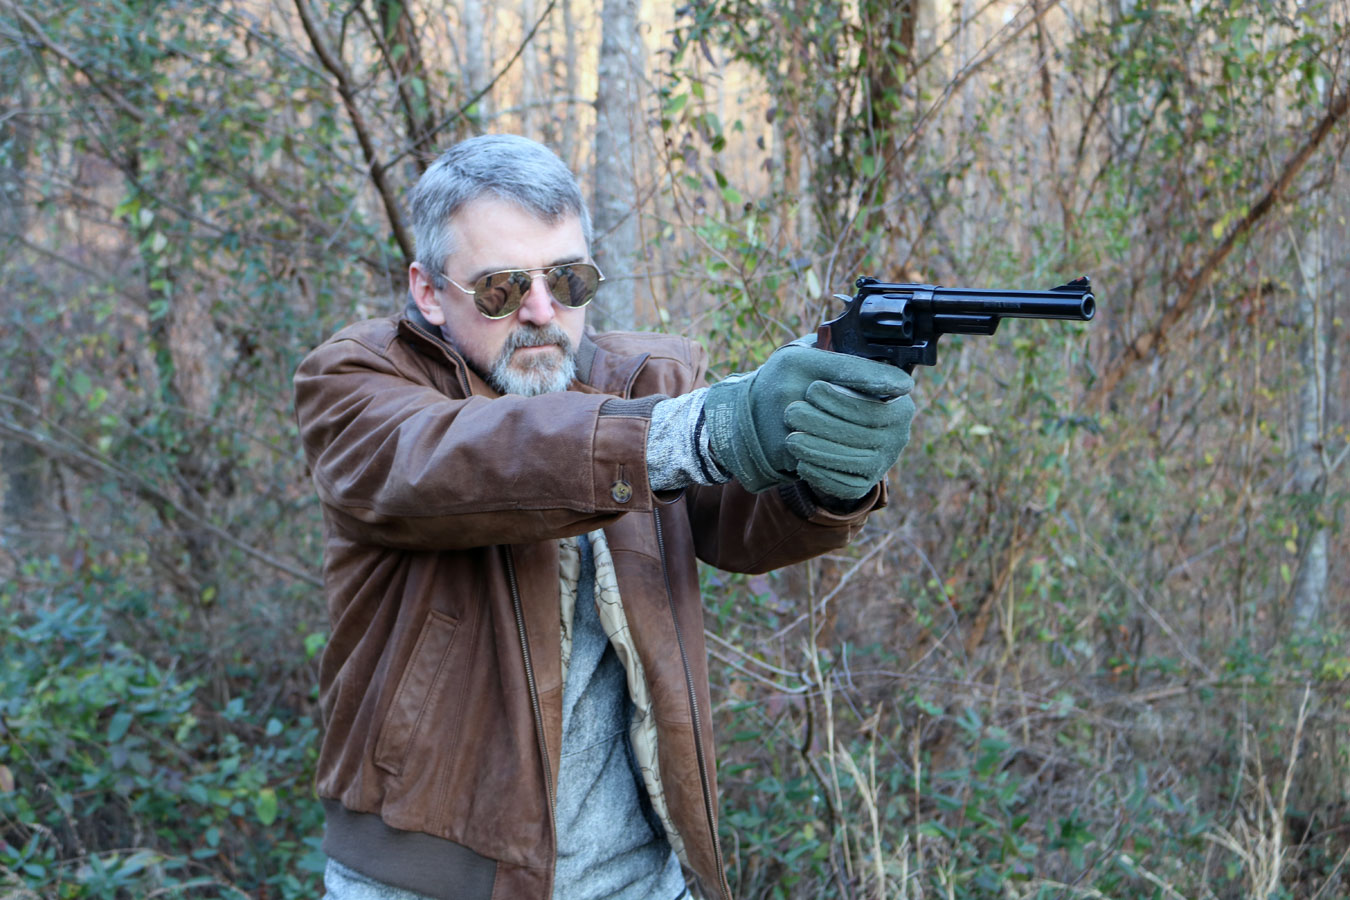 Will Dabbs shooting the Smith and Wesson Model 29 revolver